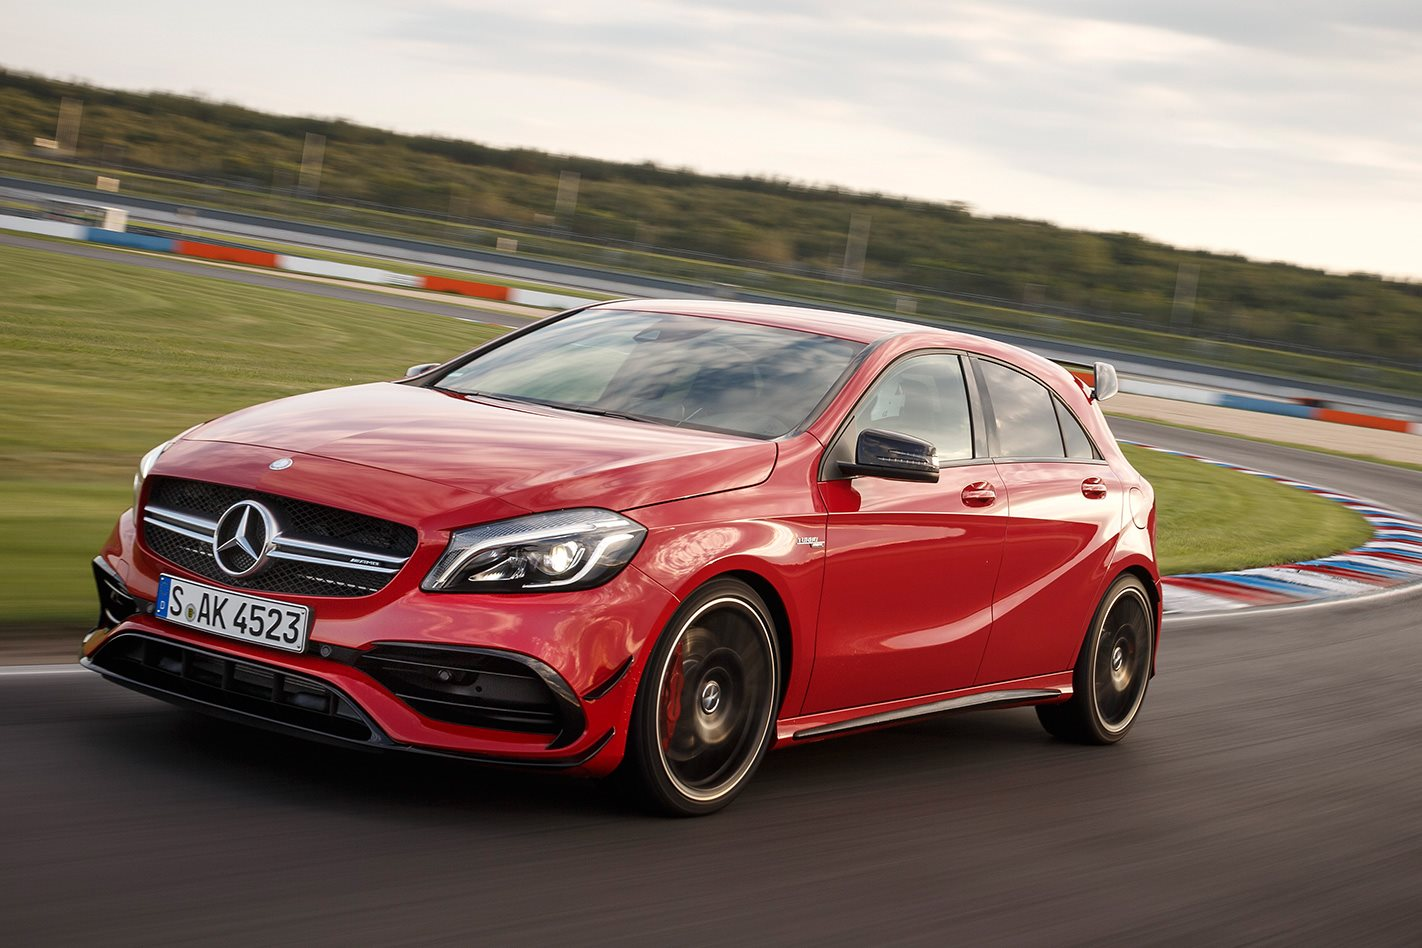 2016 mercedes benz a45 amg review wheels. Black Bedroom Furniture Sets. Home Design Ideas